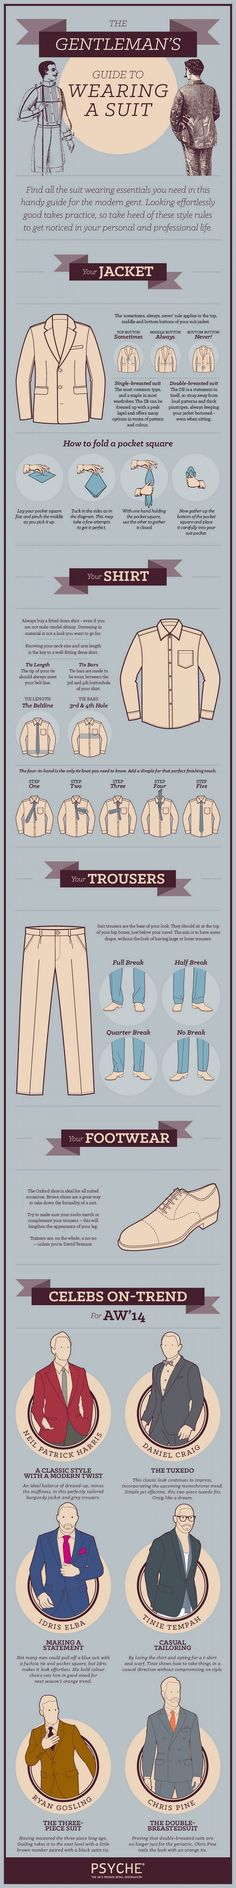 The Gentleman's Guide To Wearing A Suit (Infographic)